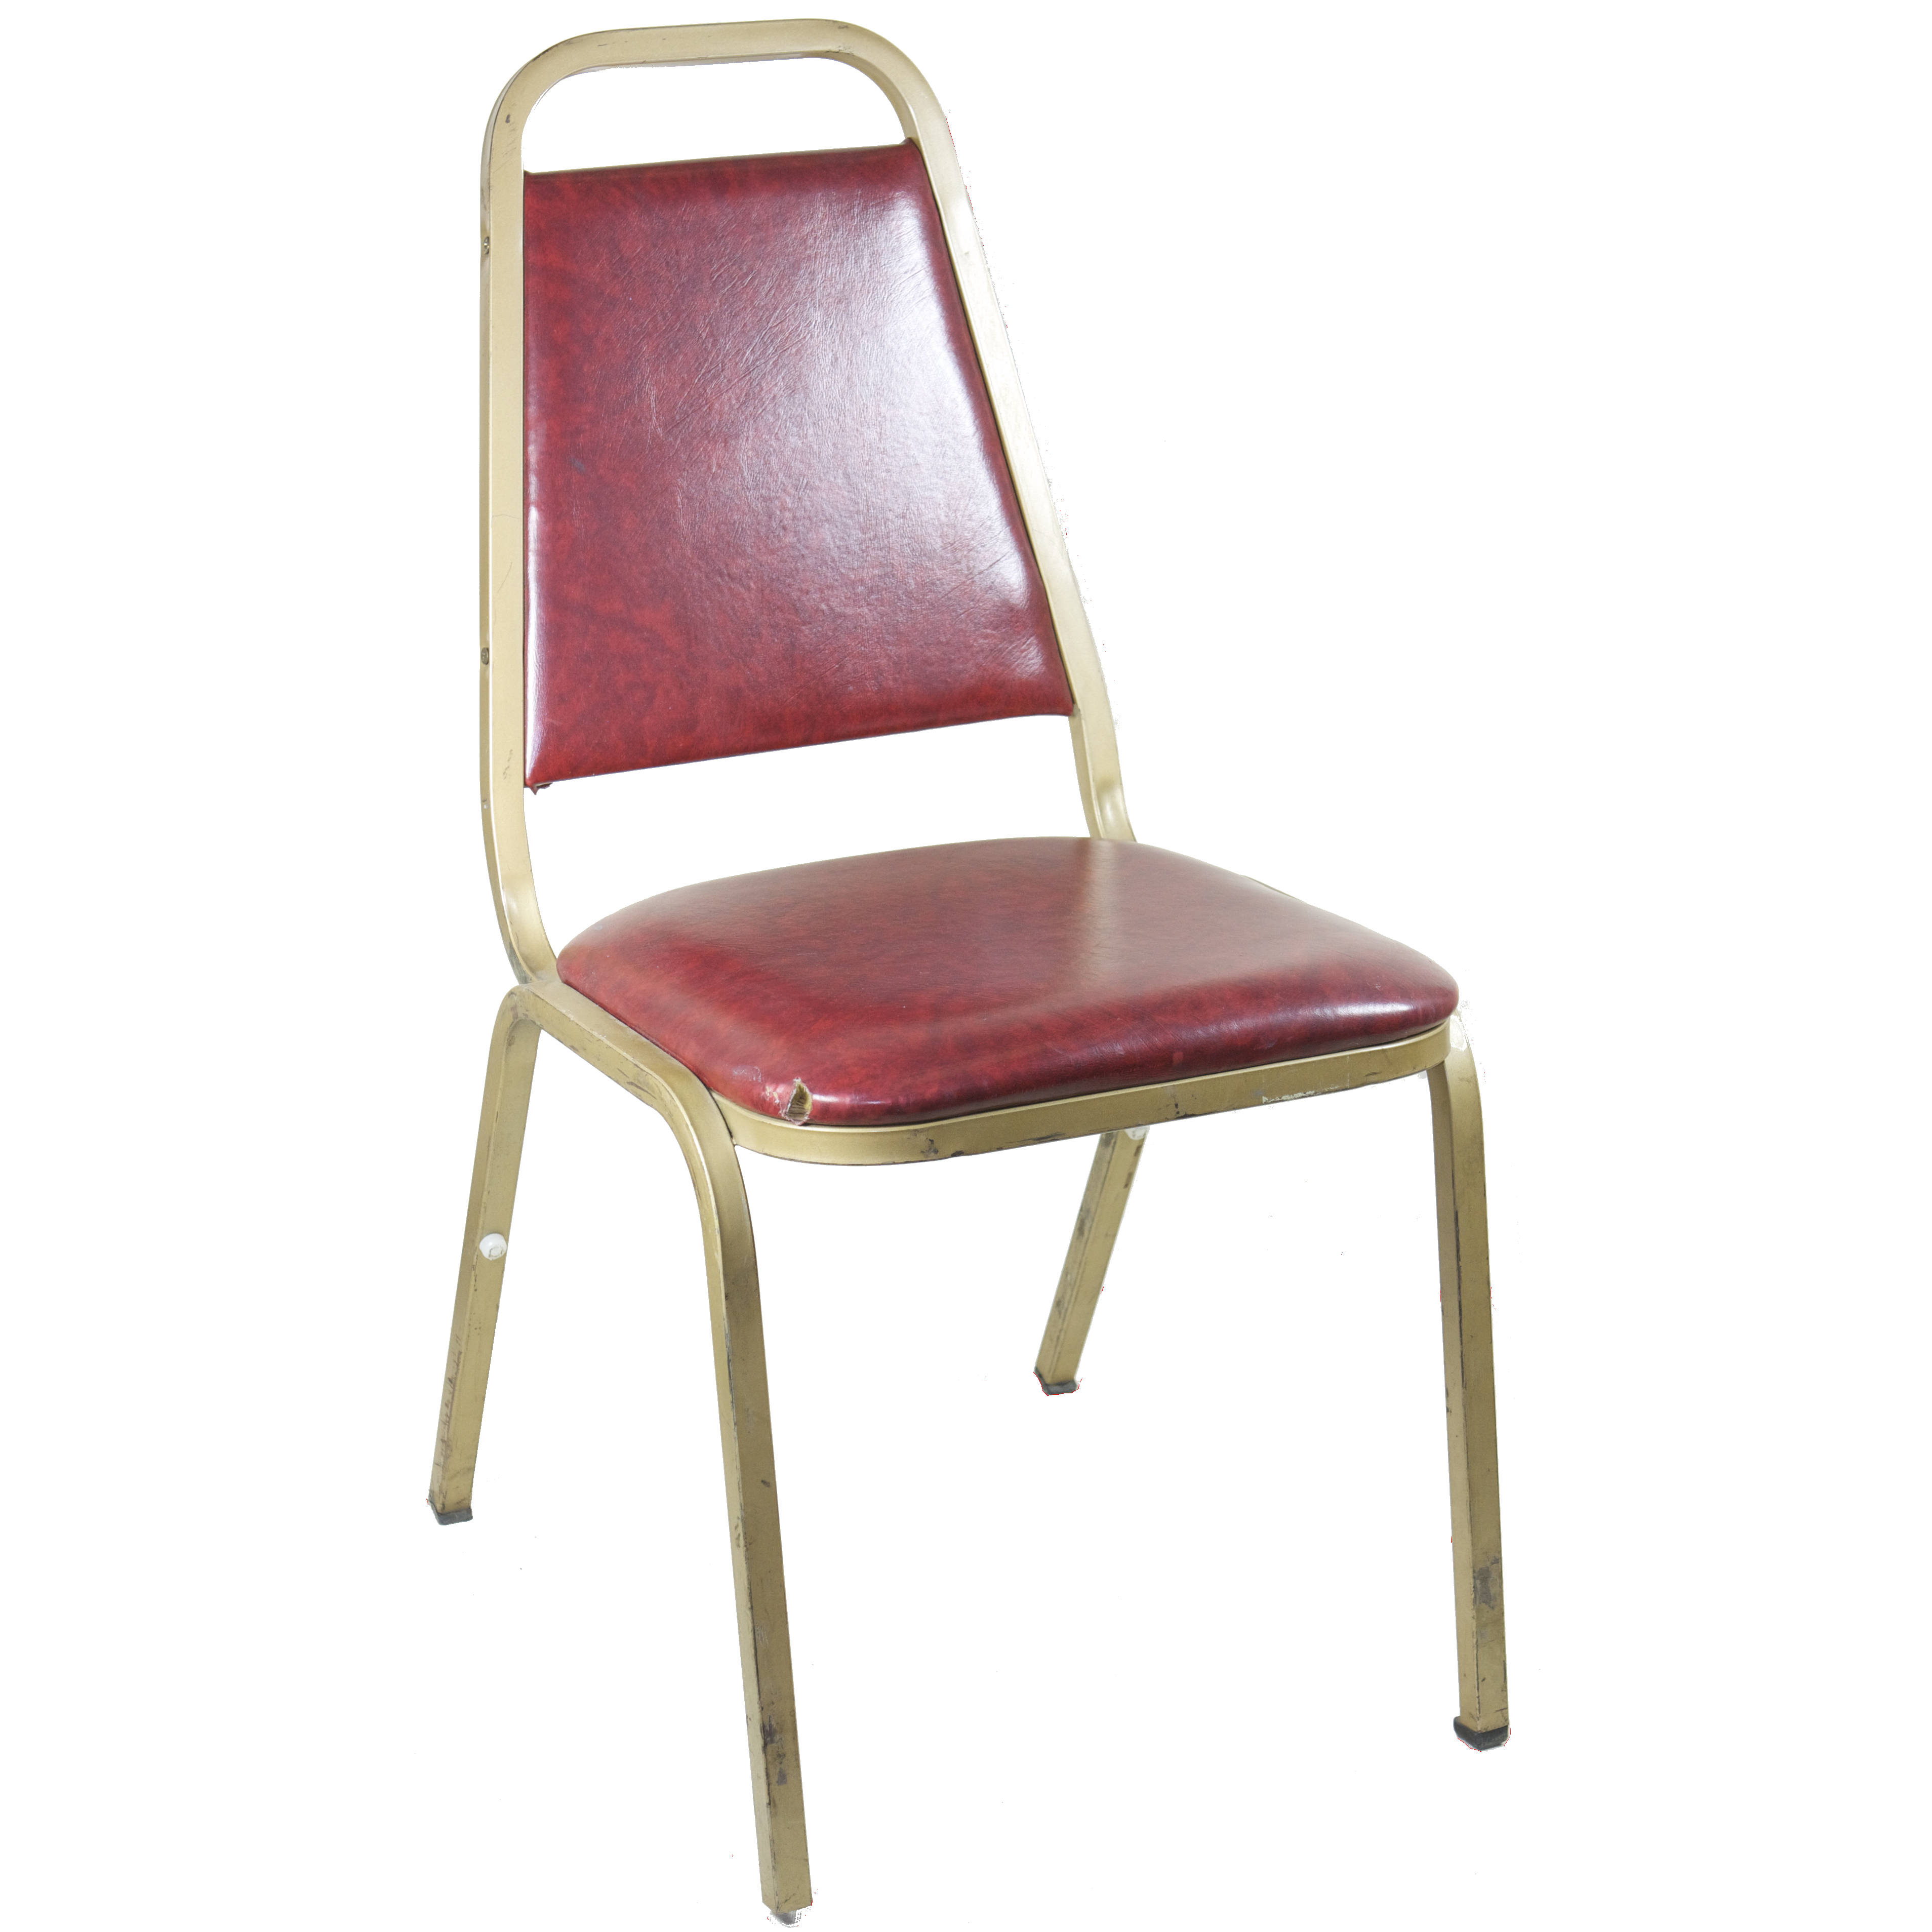 steel chair gold wedding covers ireland square back stack metal w burgundy air